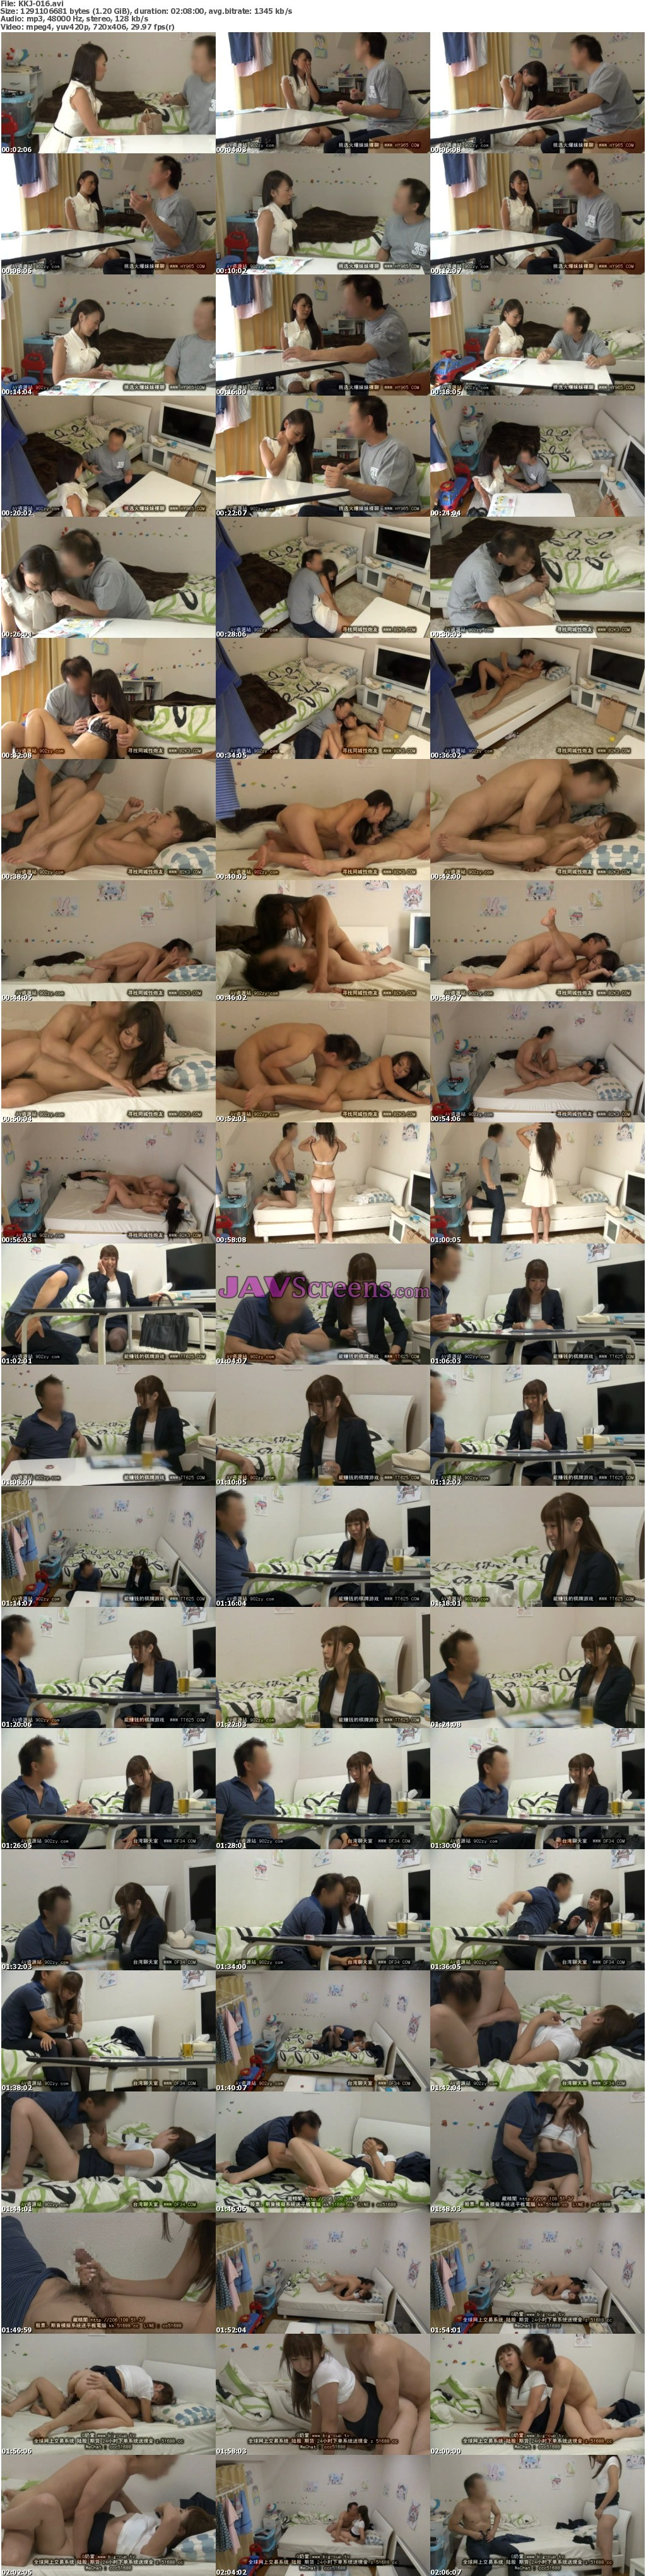 KKJ-016.jpg - JAV Screenshot